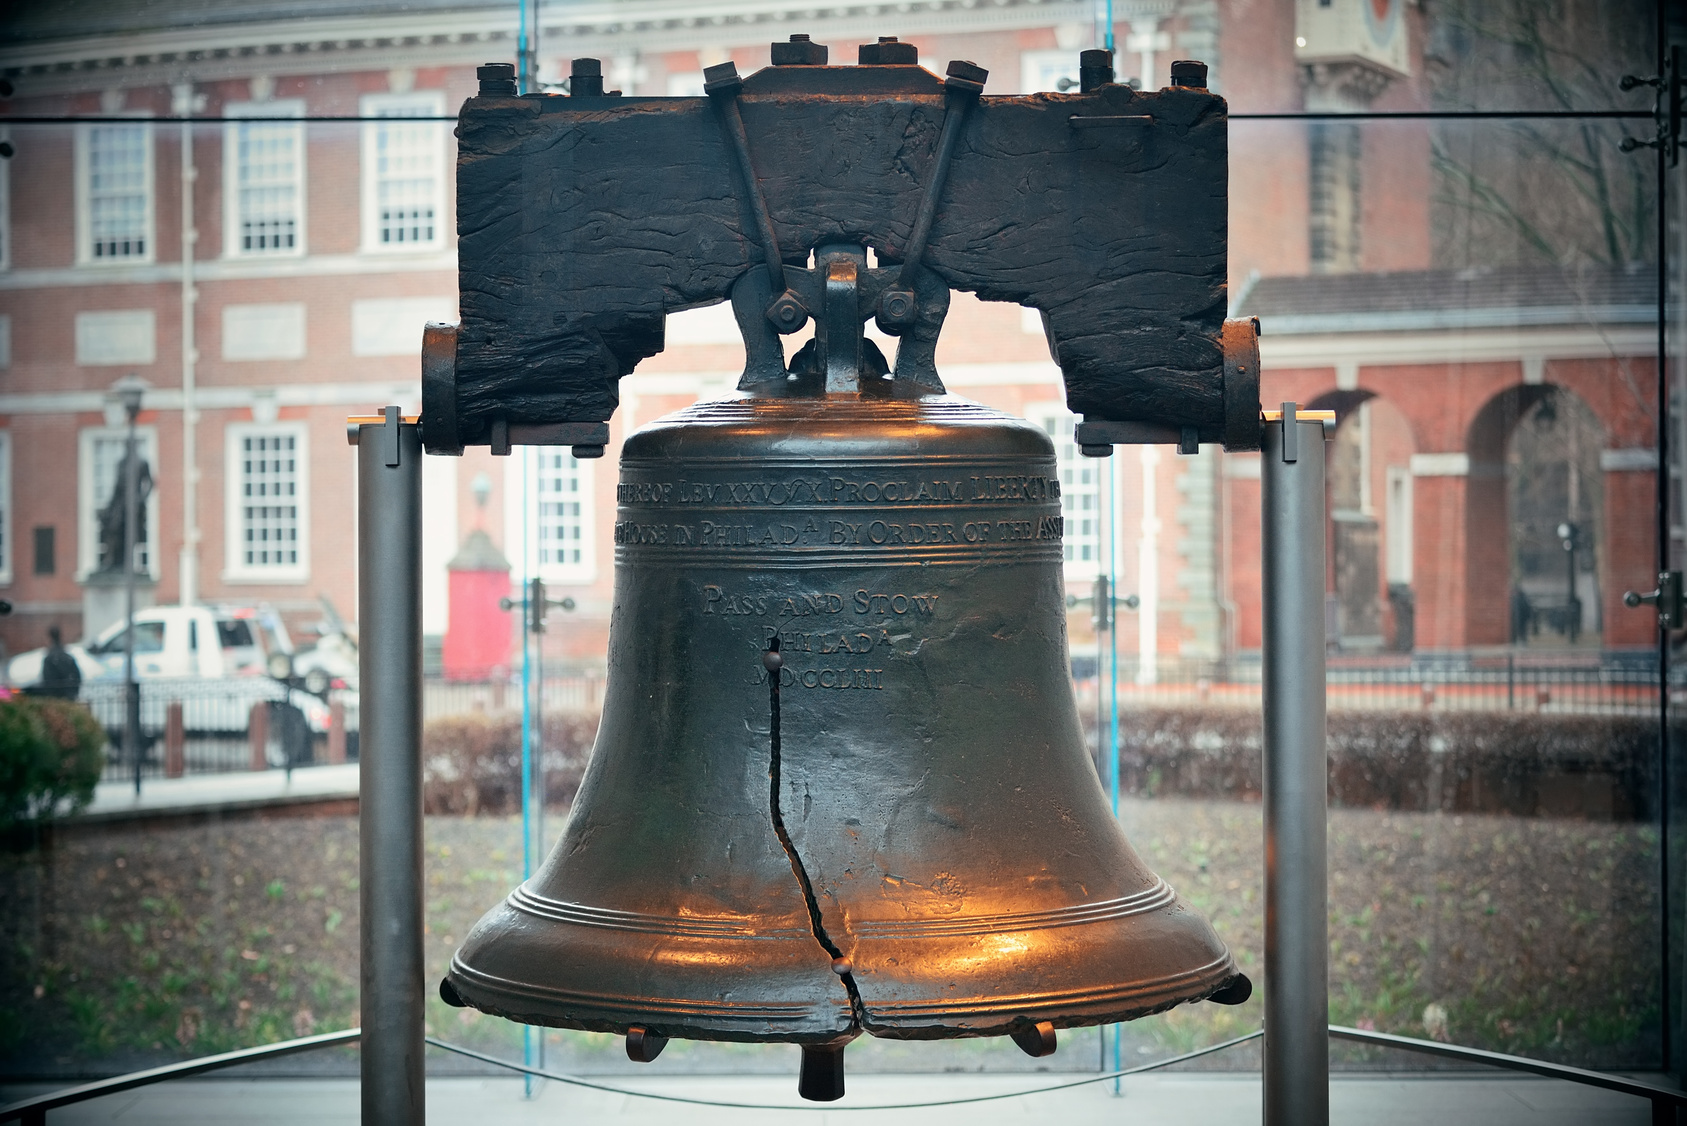 Liberty Bell und Independence Hall in Philadelphia